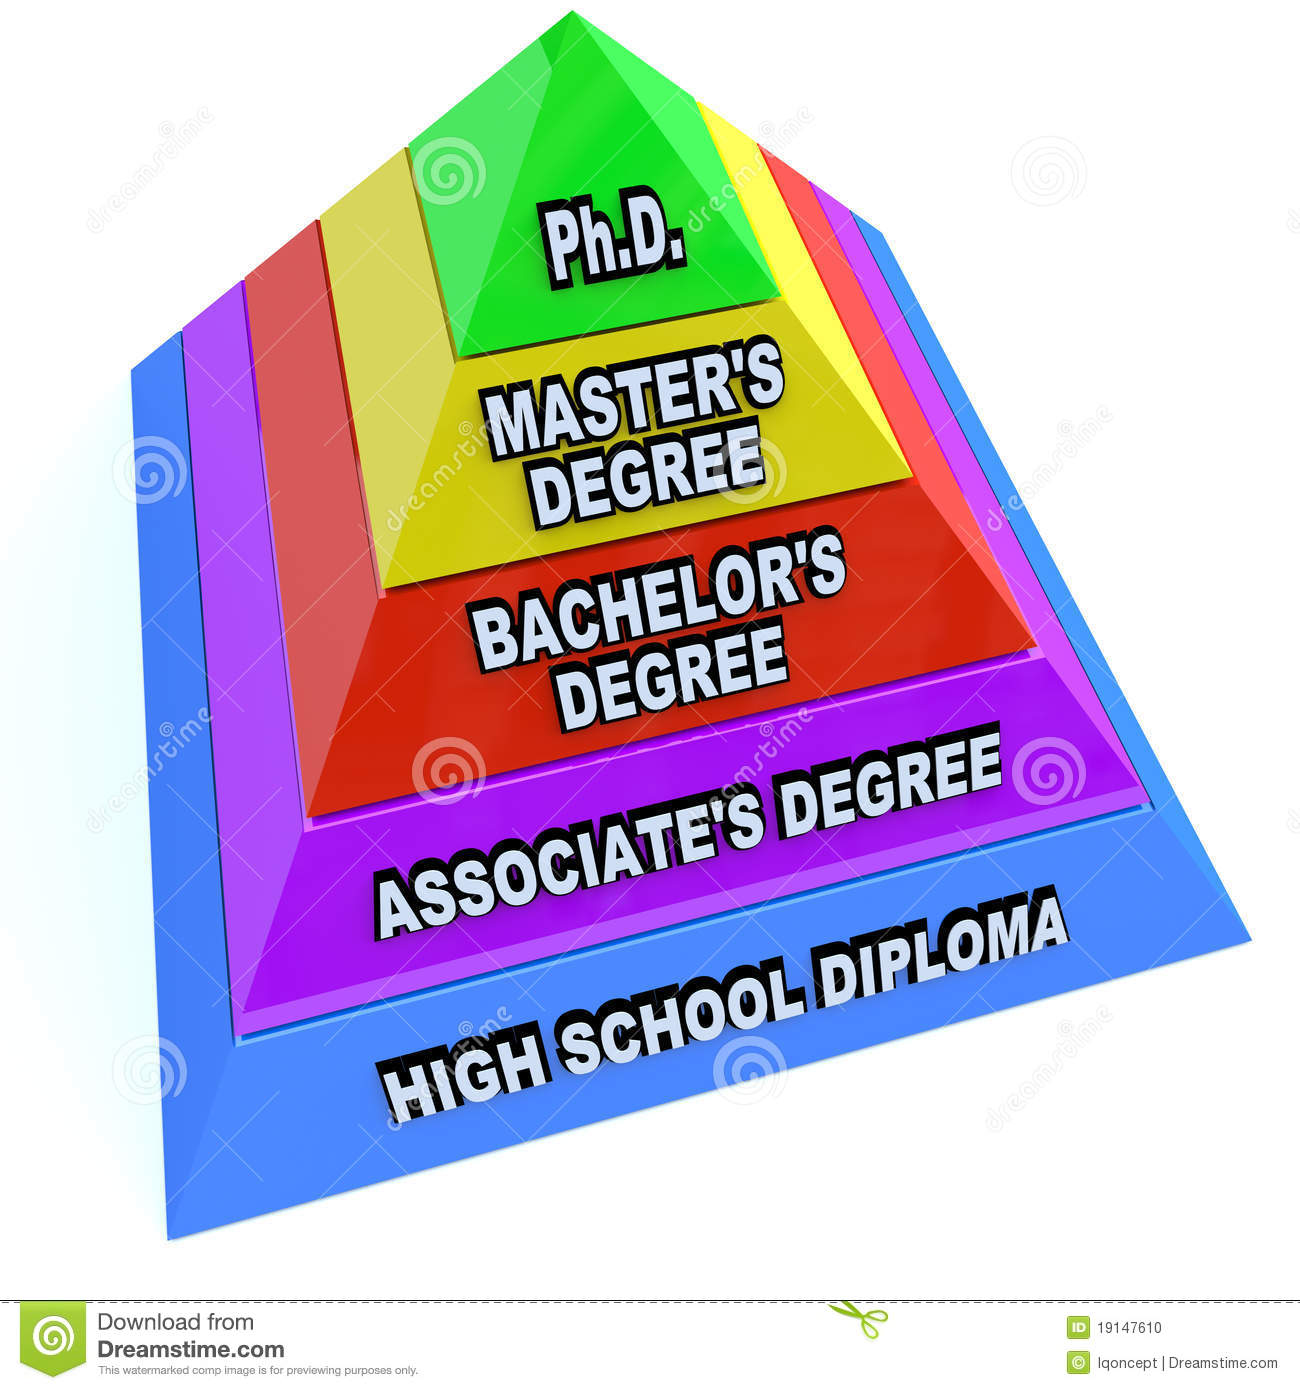 Can someone go from a bachelor's to a phd or straight to one?